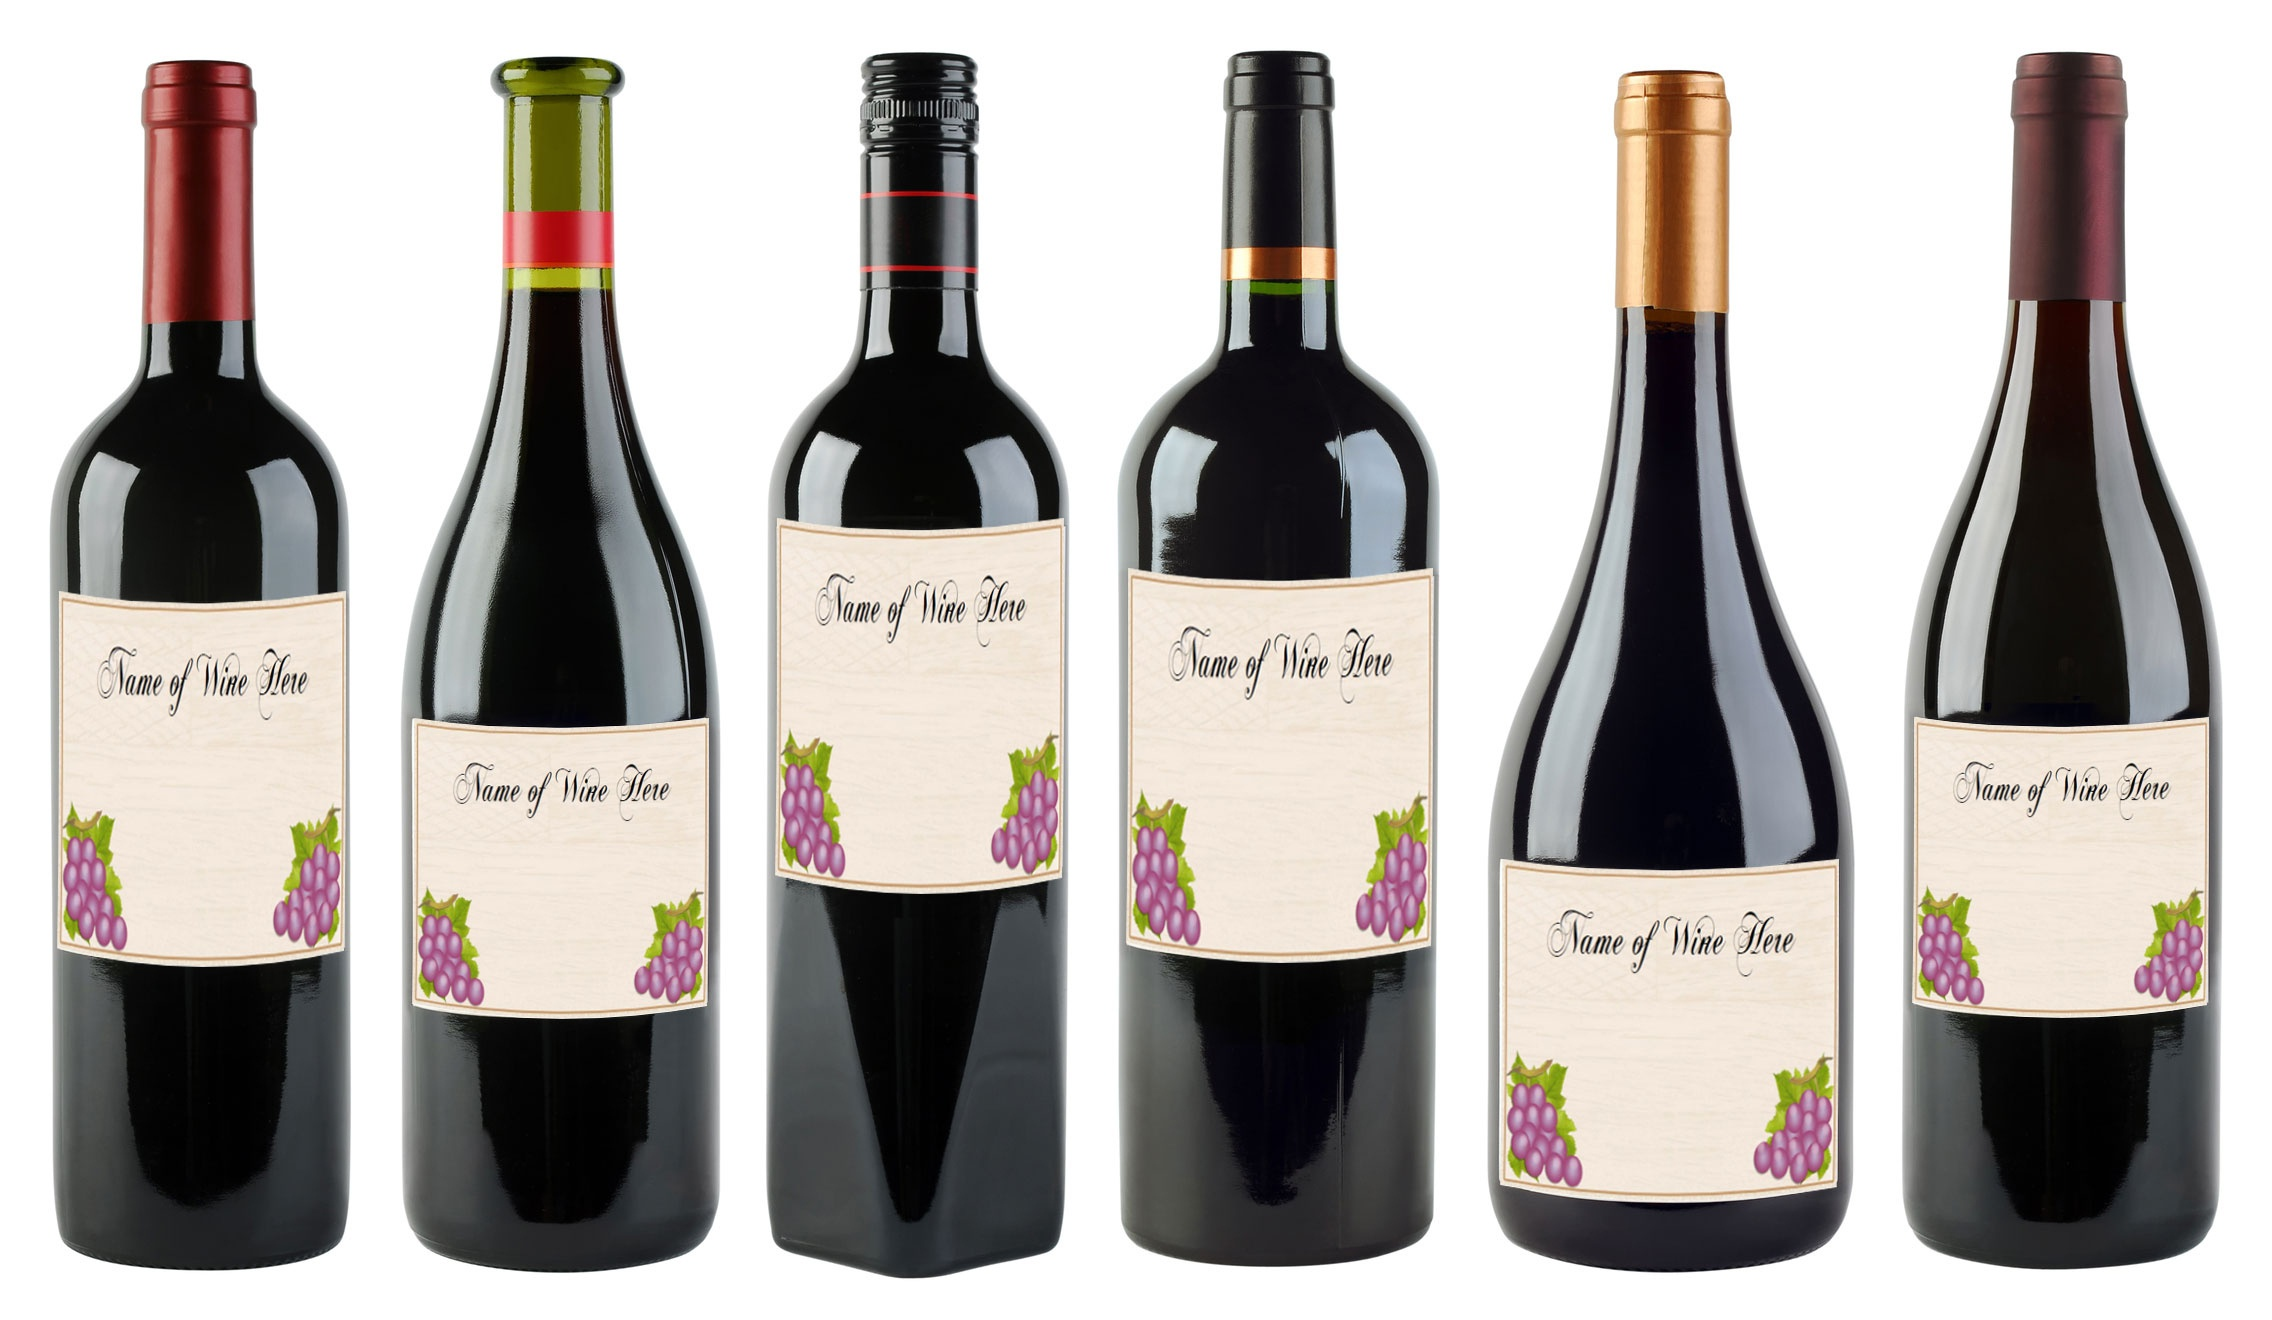 6 Free Printable Wine Labels You Can Customize | Lovetoknow - Free Printable Wine Labels With Photo